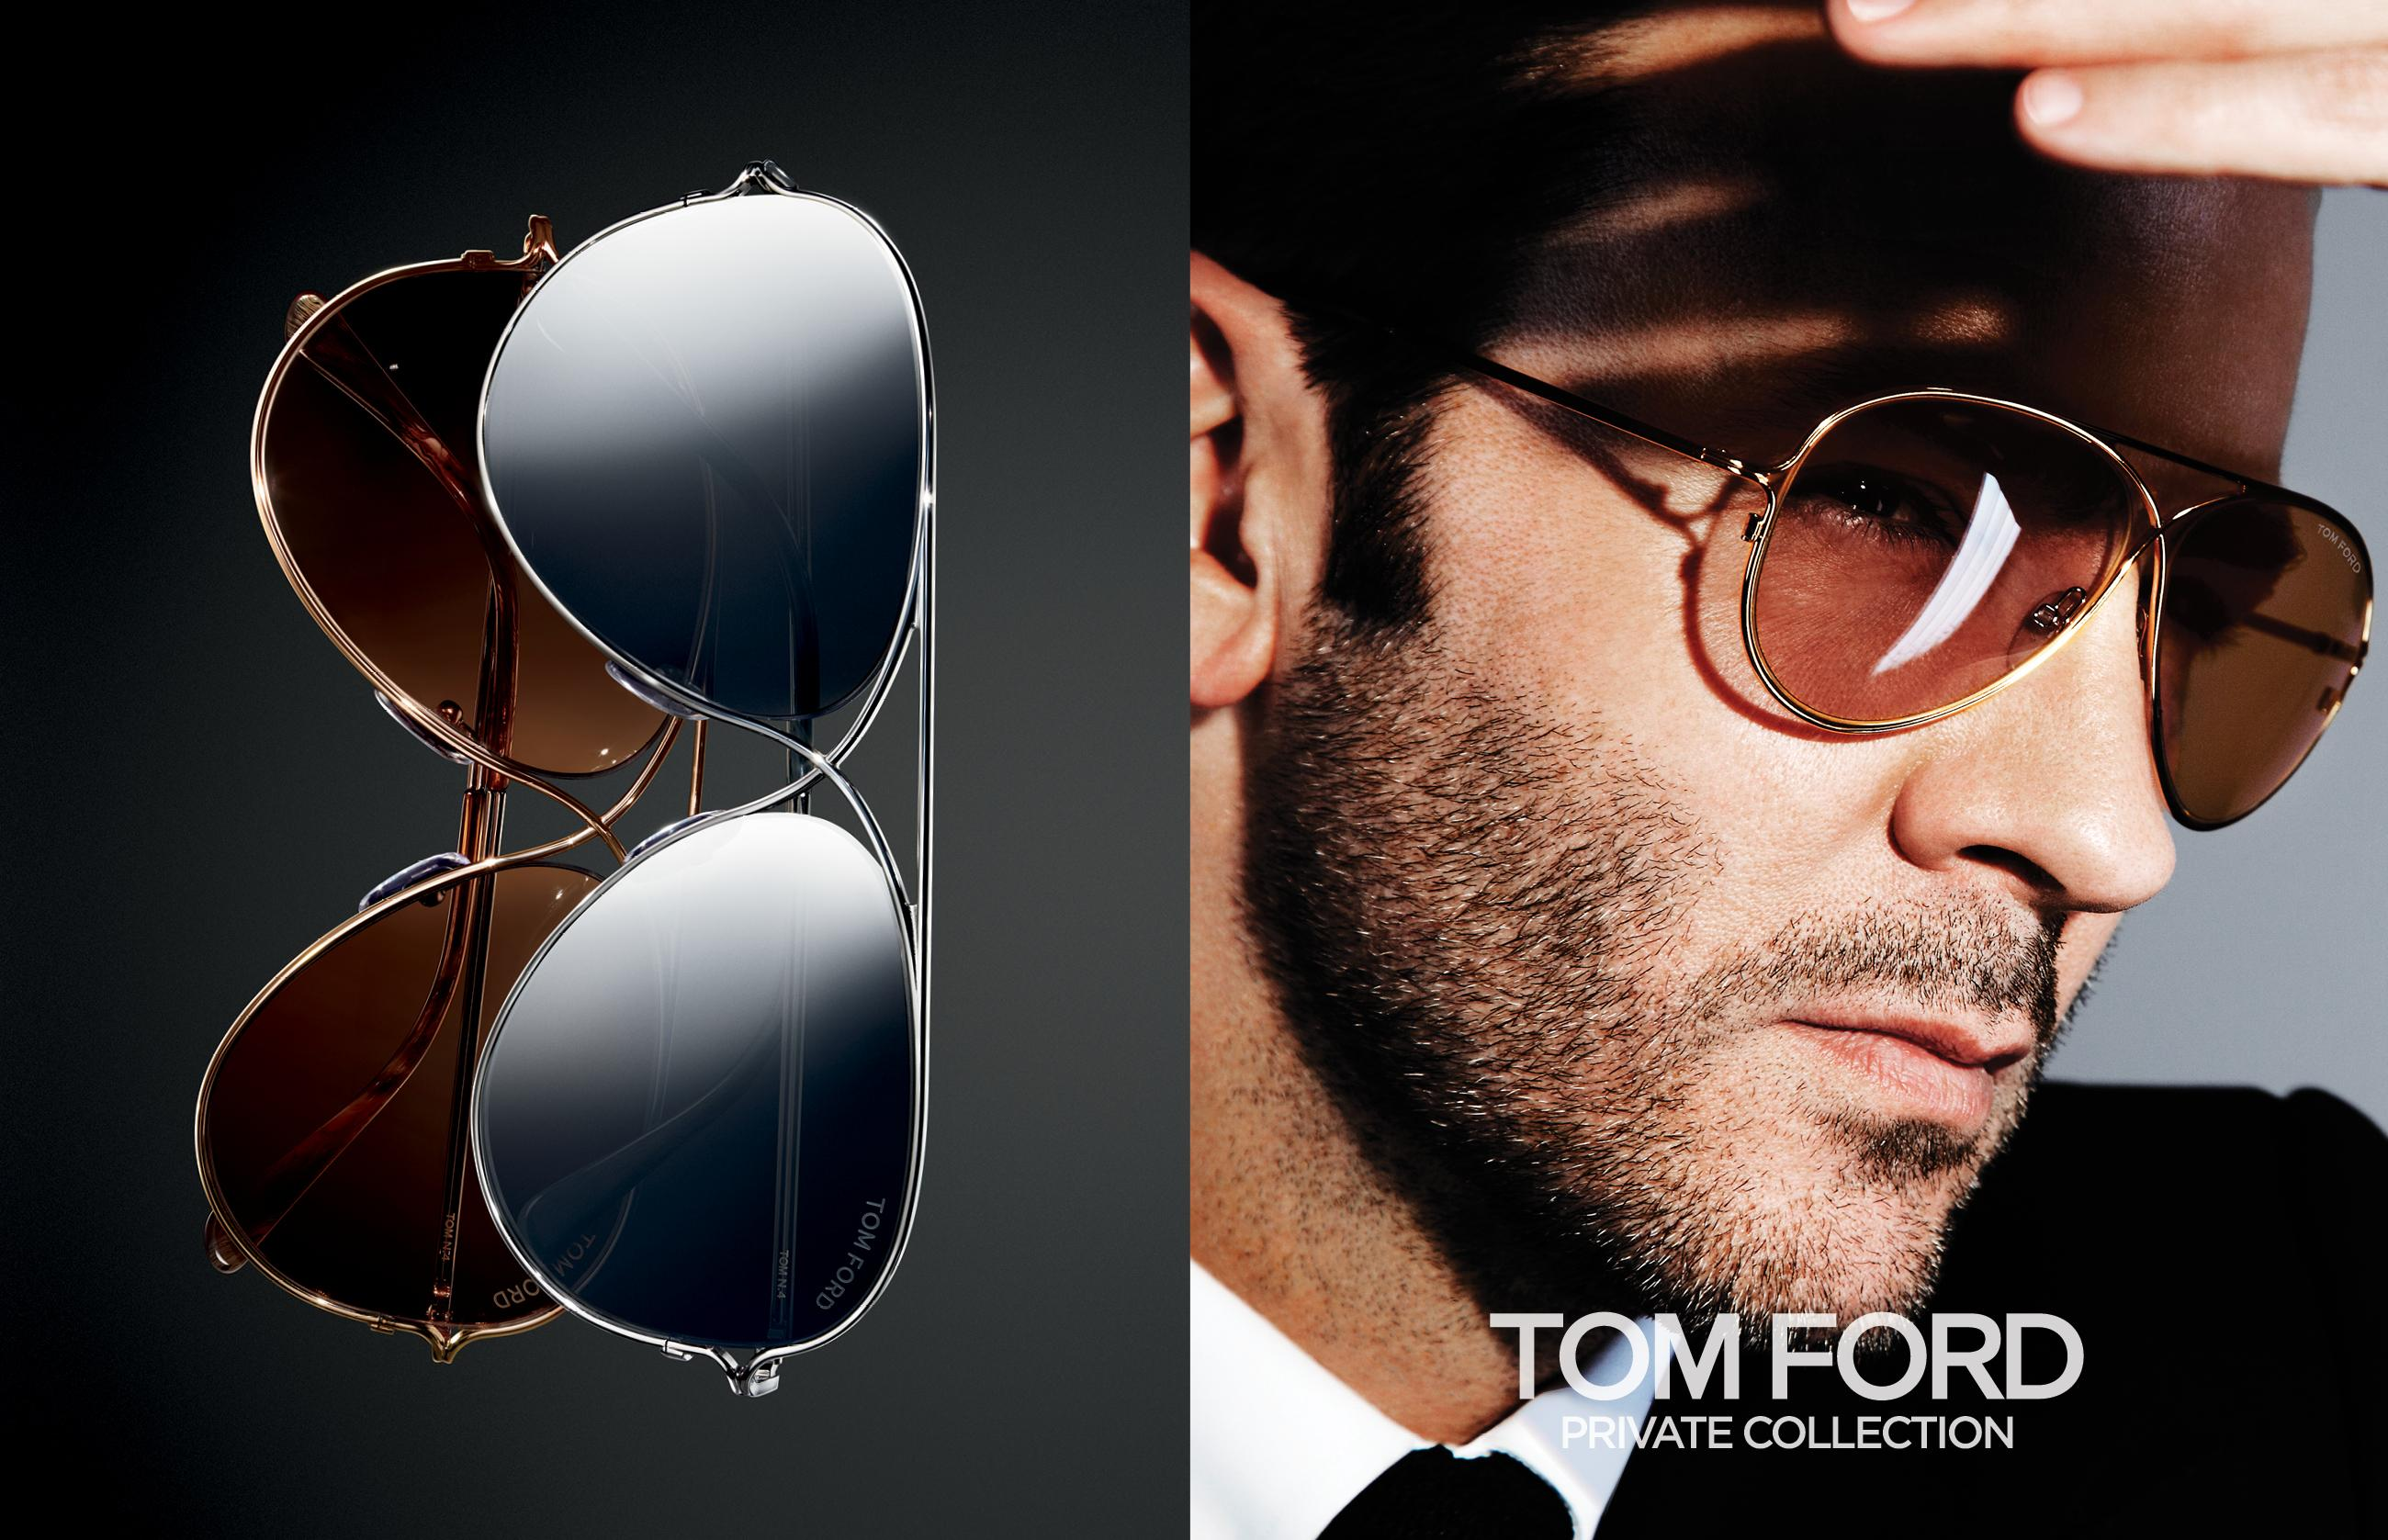 cdd7853e20 TOM FORD LAUNCHES PRIVATE EYEWEAR COLLECTION